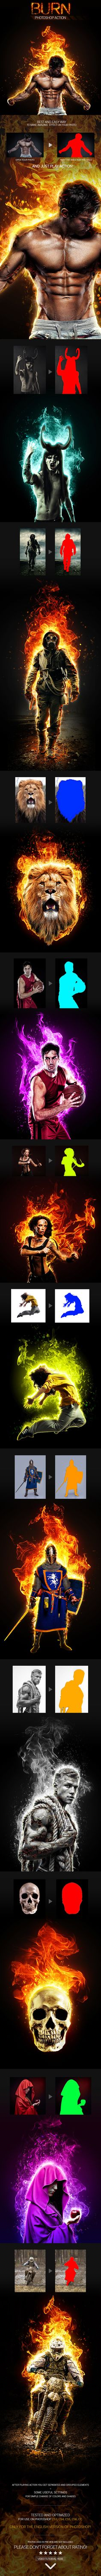 Burn Photoshop Action - Photo Effects Actions